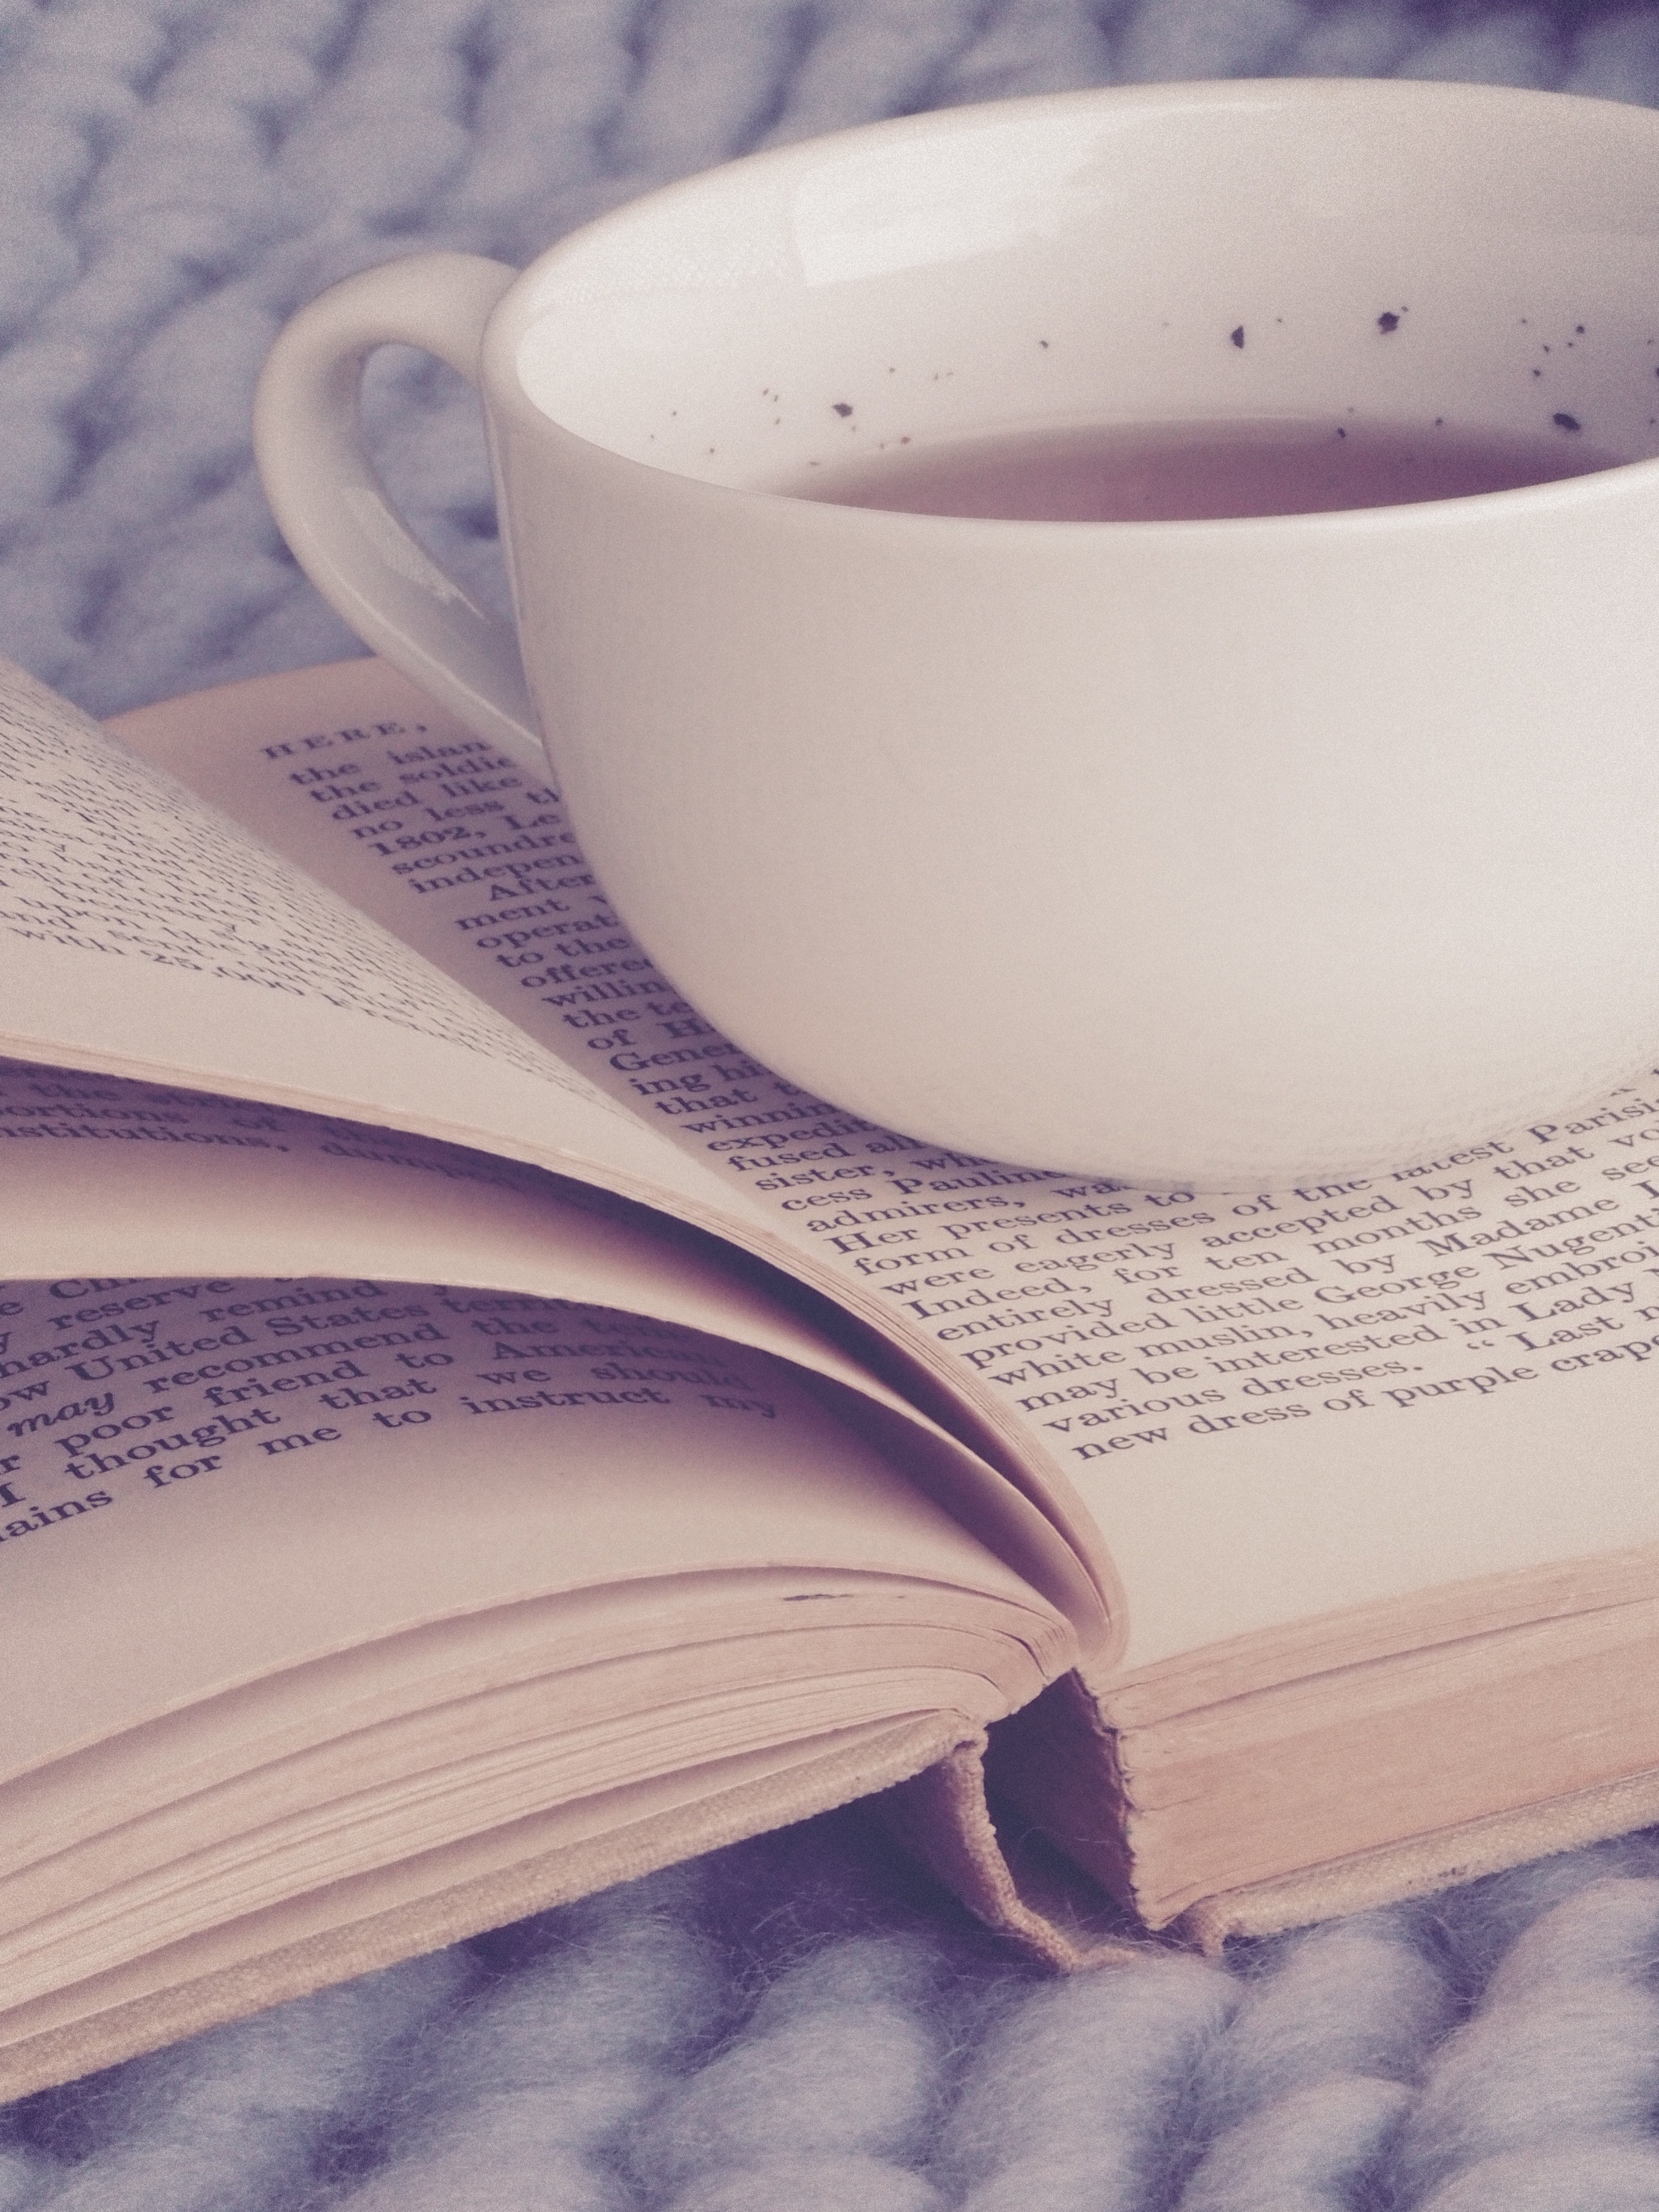 White Ceramic Cup on Top of Book